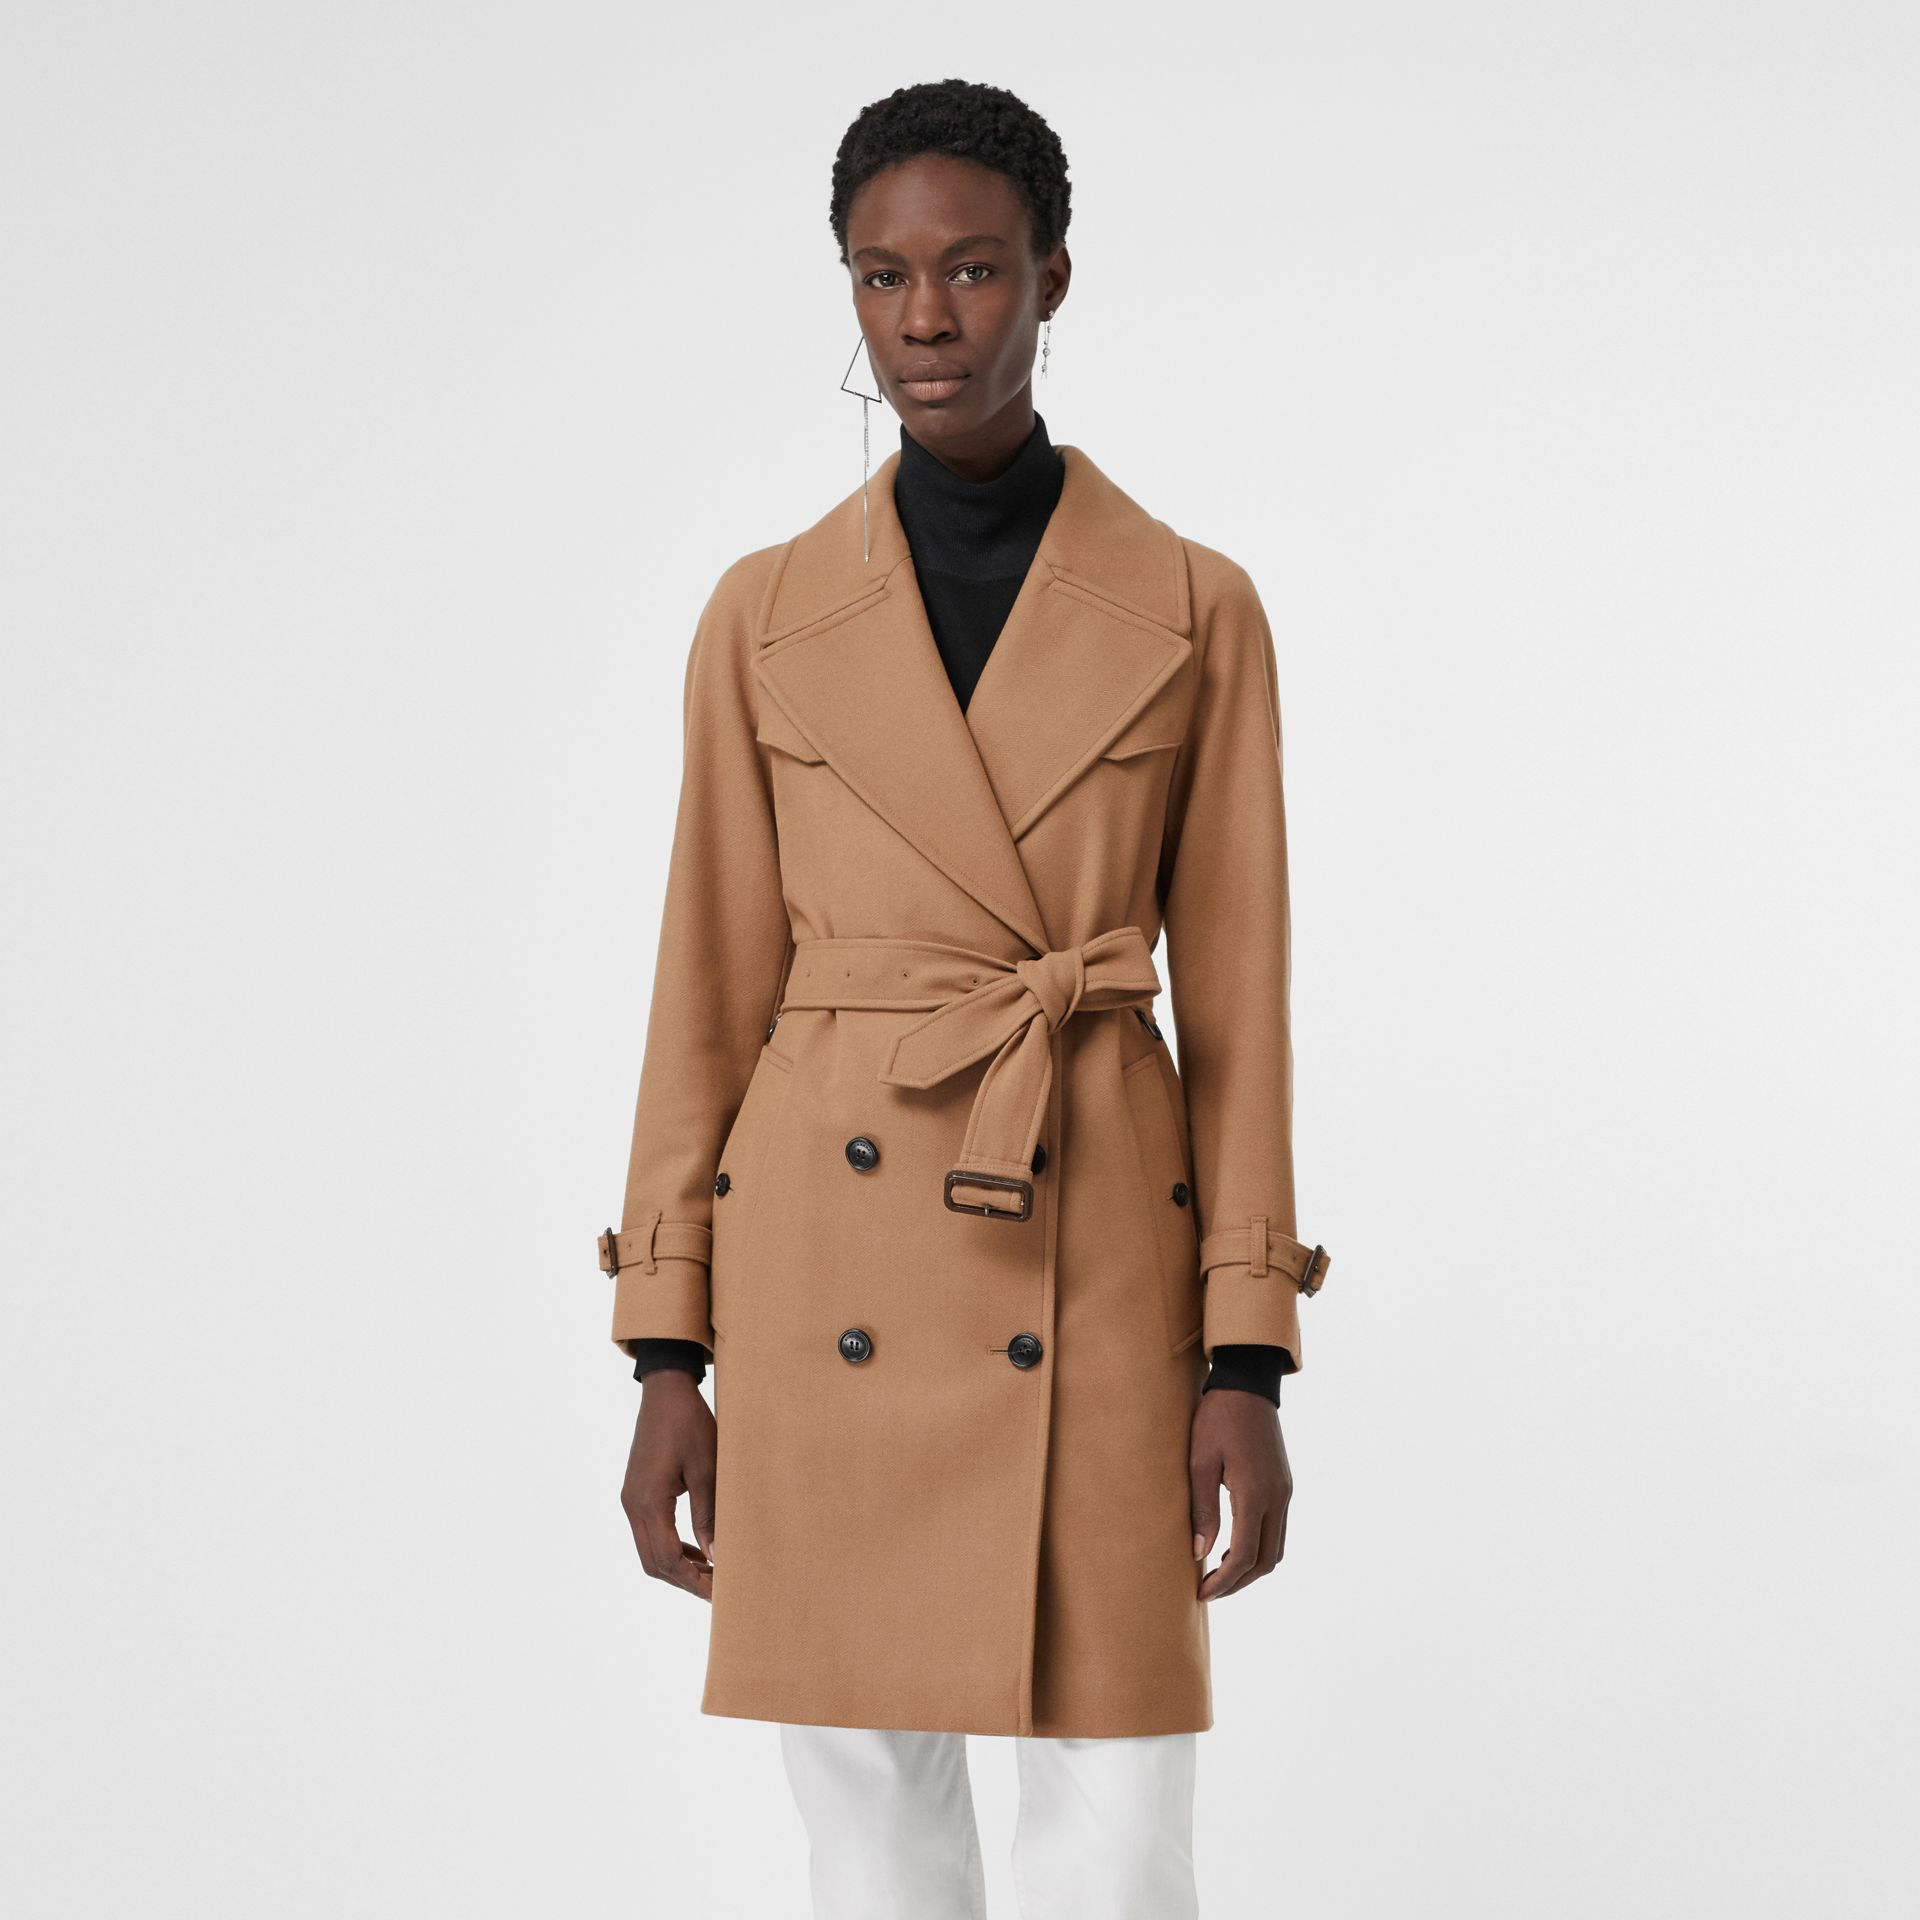 Herringbone Wool Cashmere Blend Trench Coat in Camel - Women | Burberry Singapore - gallery image 5